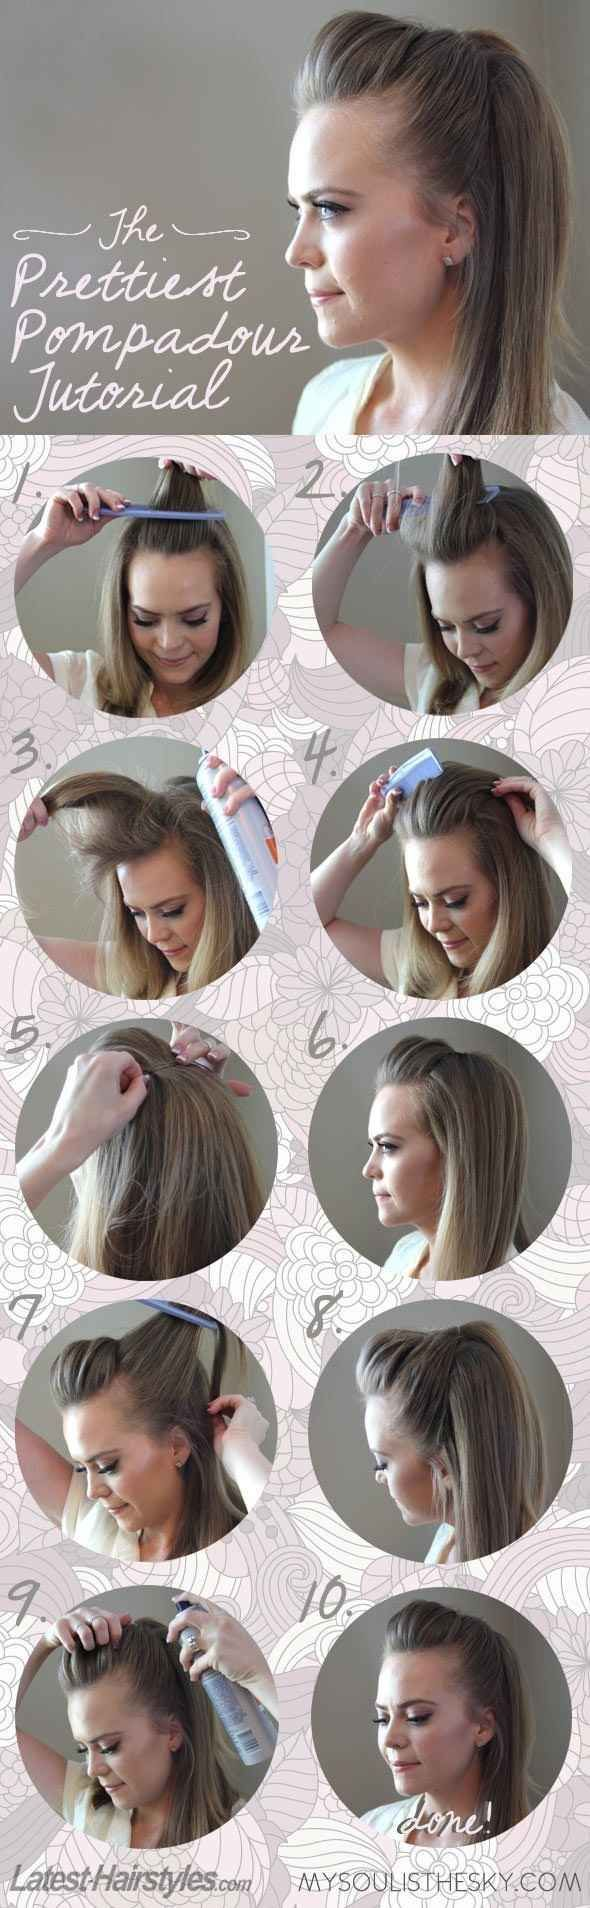 5 minutes hairstyles4